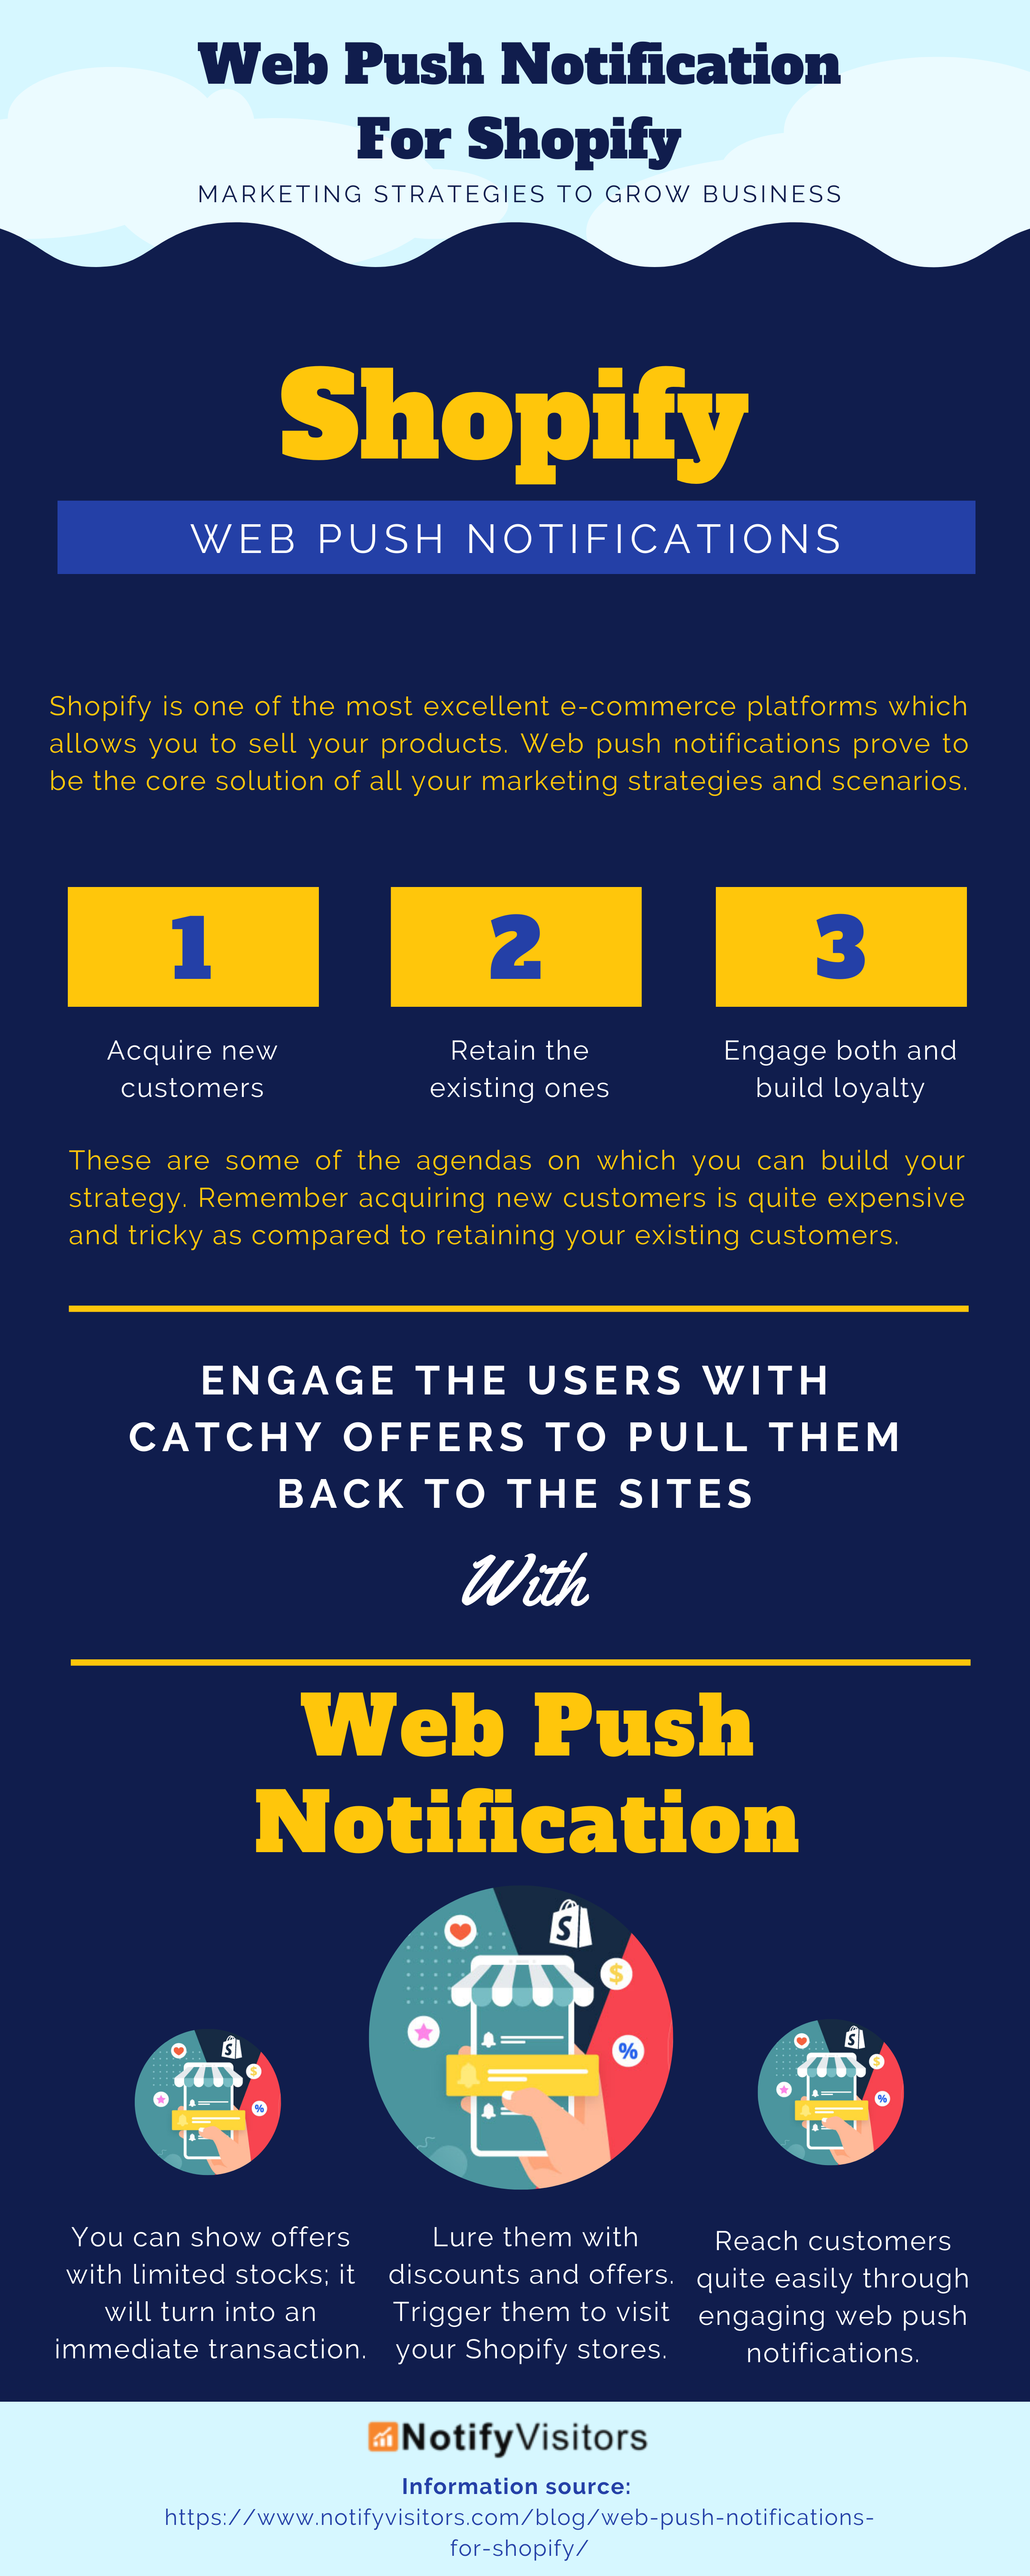 Marketing Strategies For Shopify with Web Push Notifications